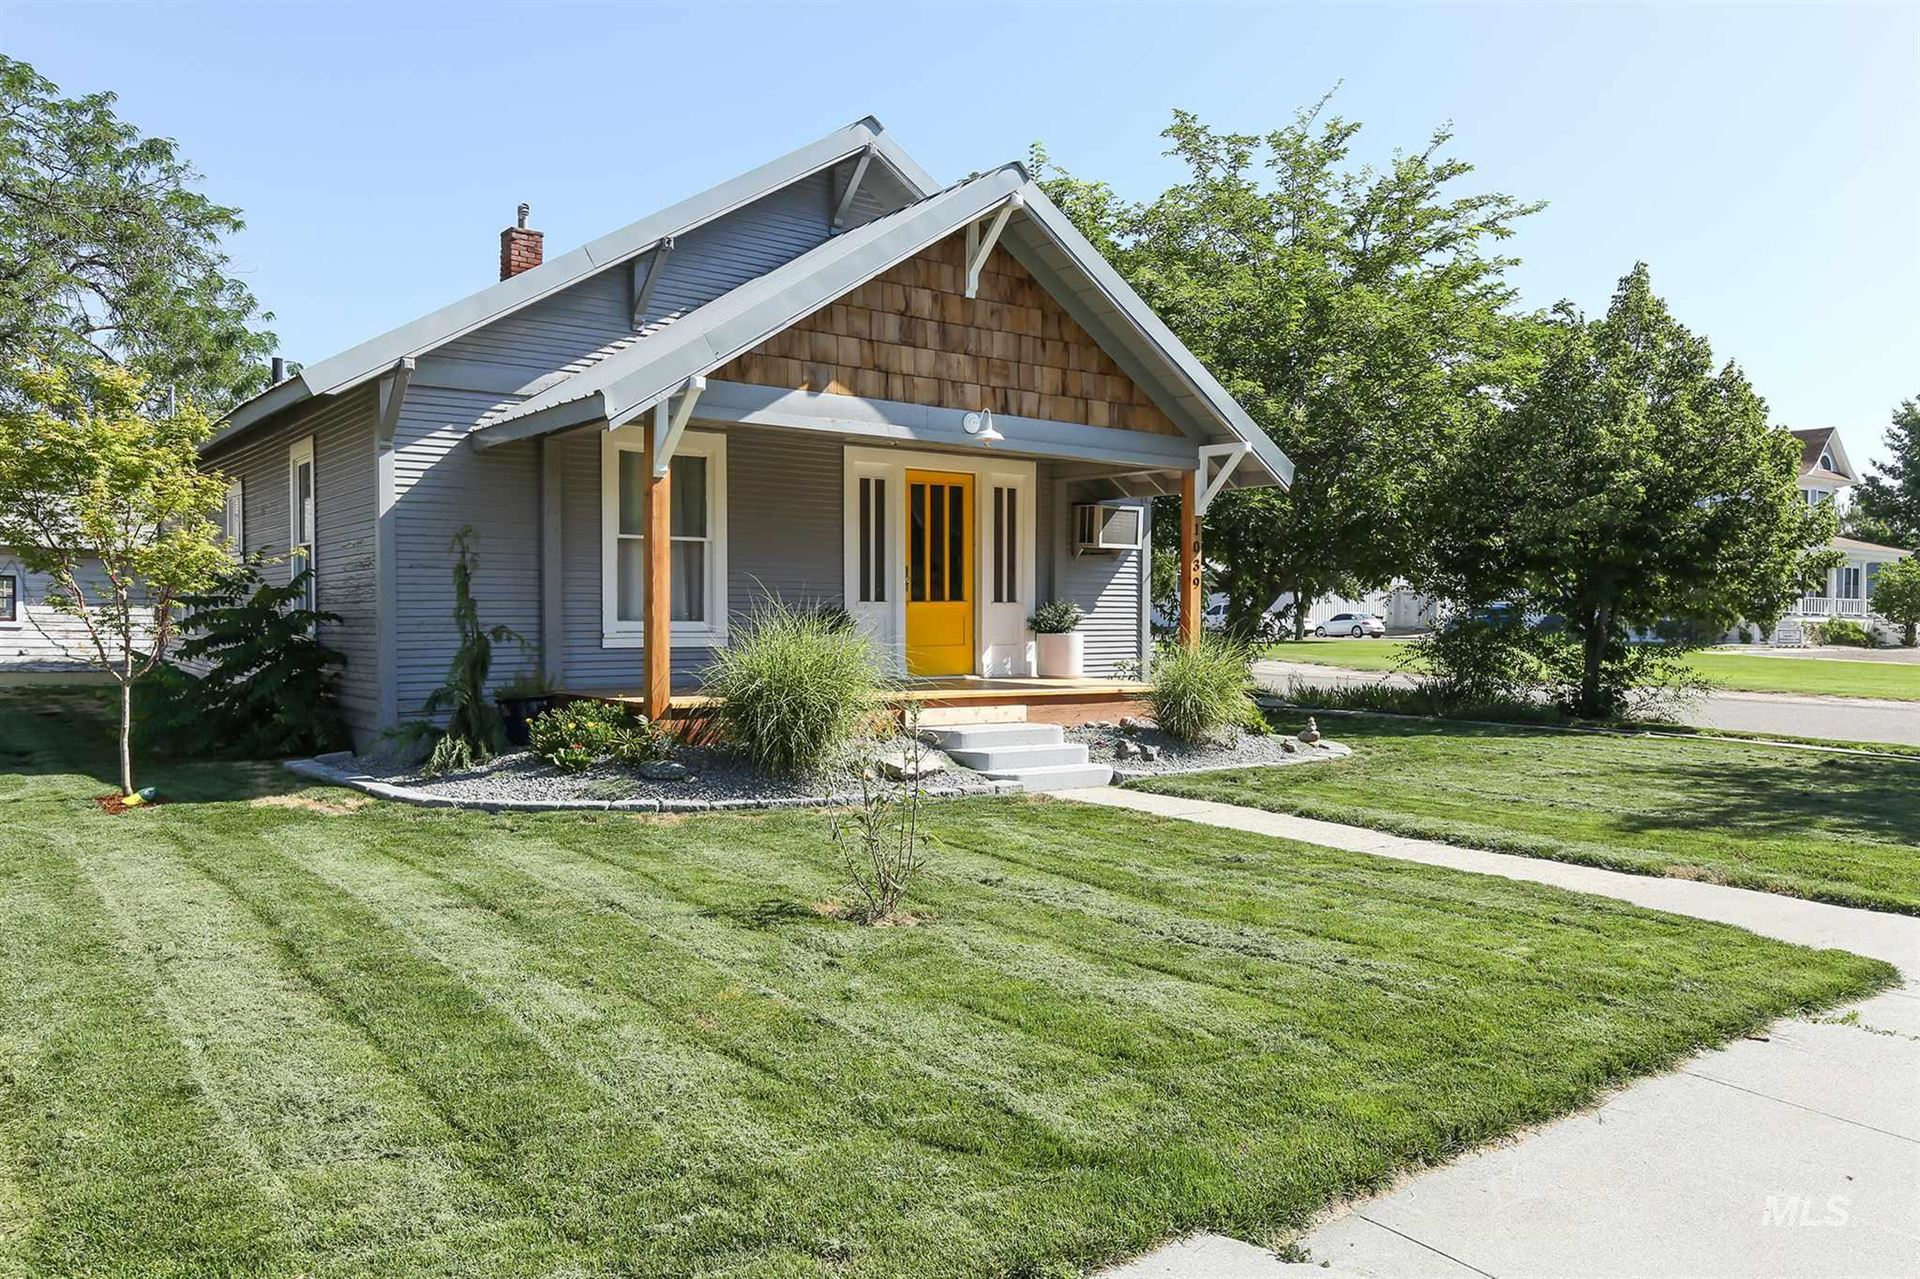 Photo of 1039 1st Ave North, Payette, ID 83619 (MLS # 98776500)